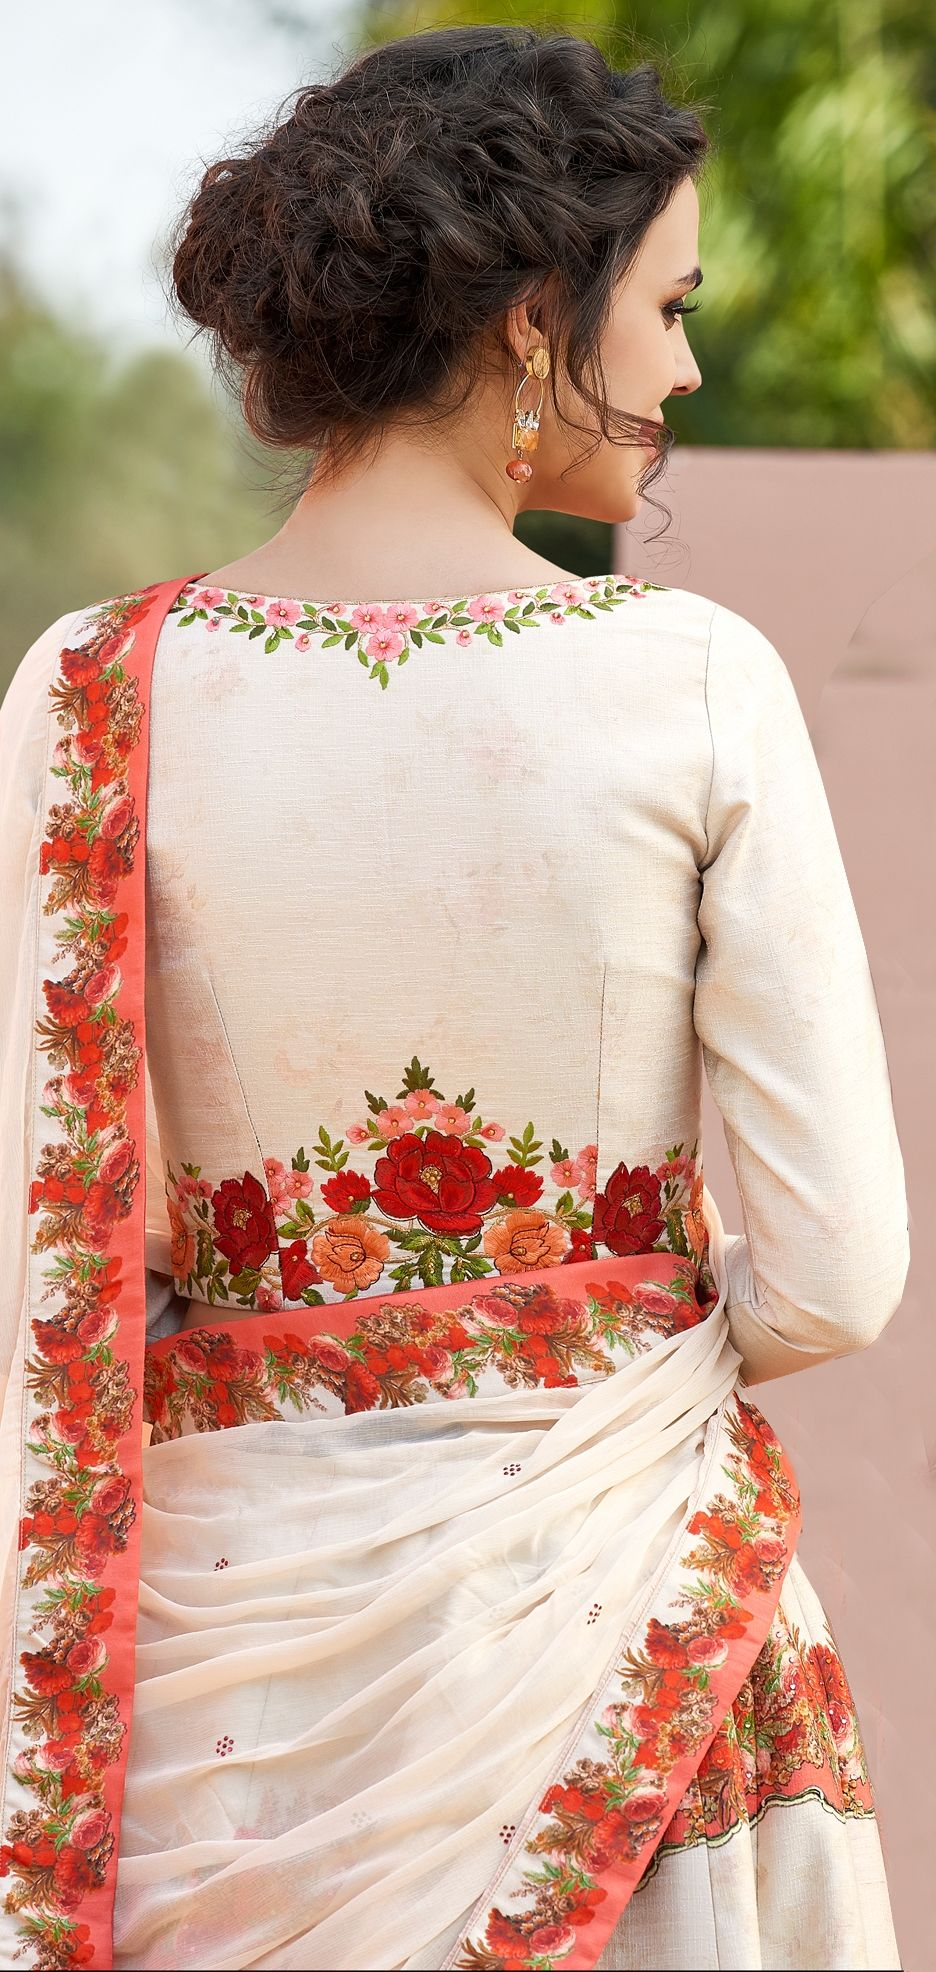 VOGUISH FLORAL ATTIRES to give you LIVELY GLIMPSES